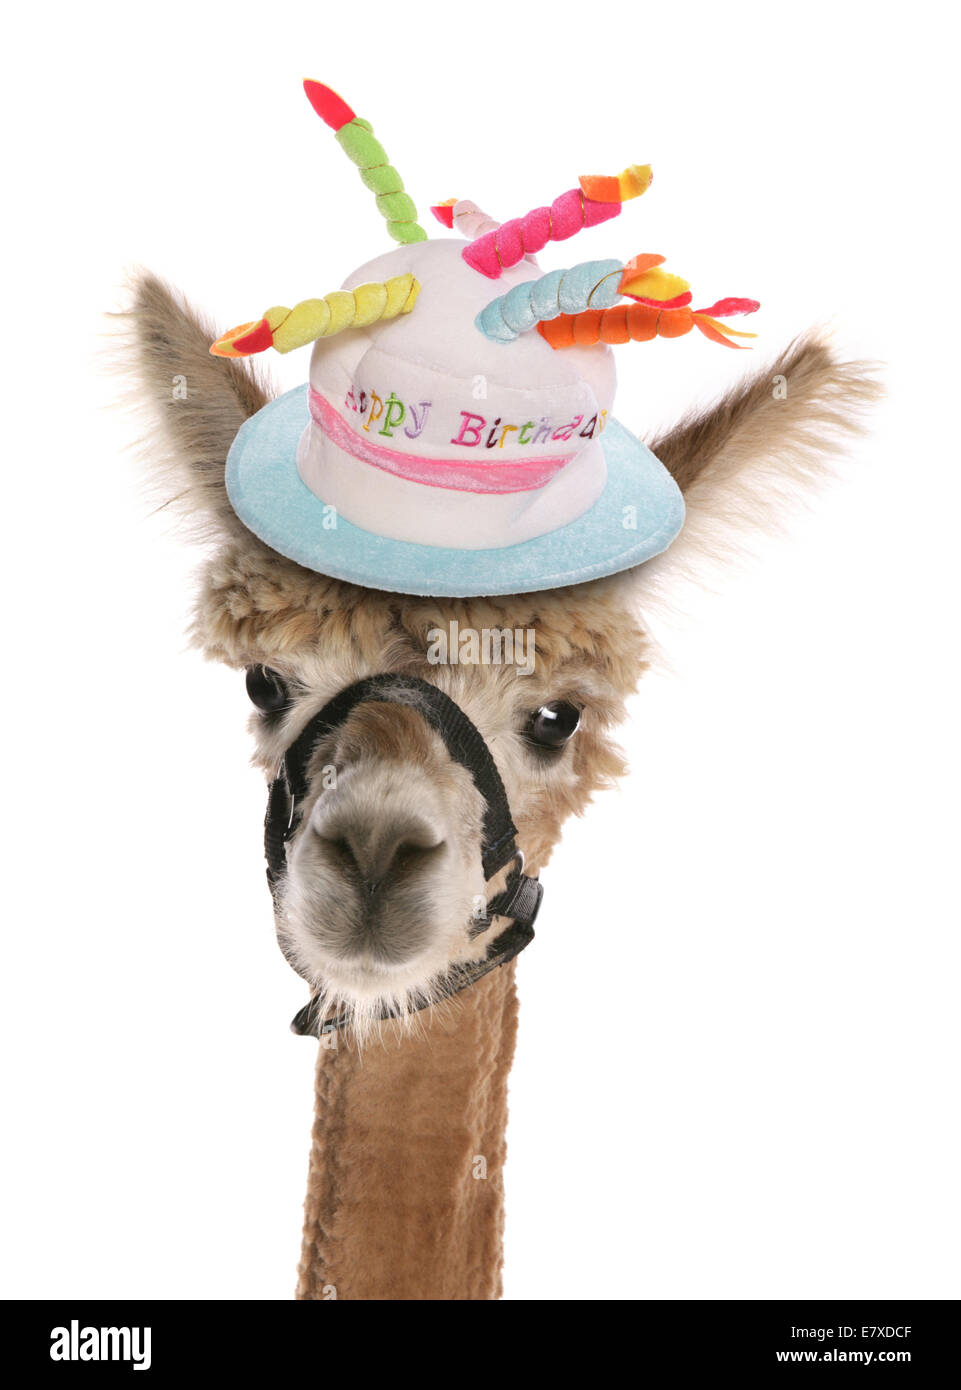 Alpaca Wearing A Birthday Hat Cutout